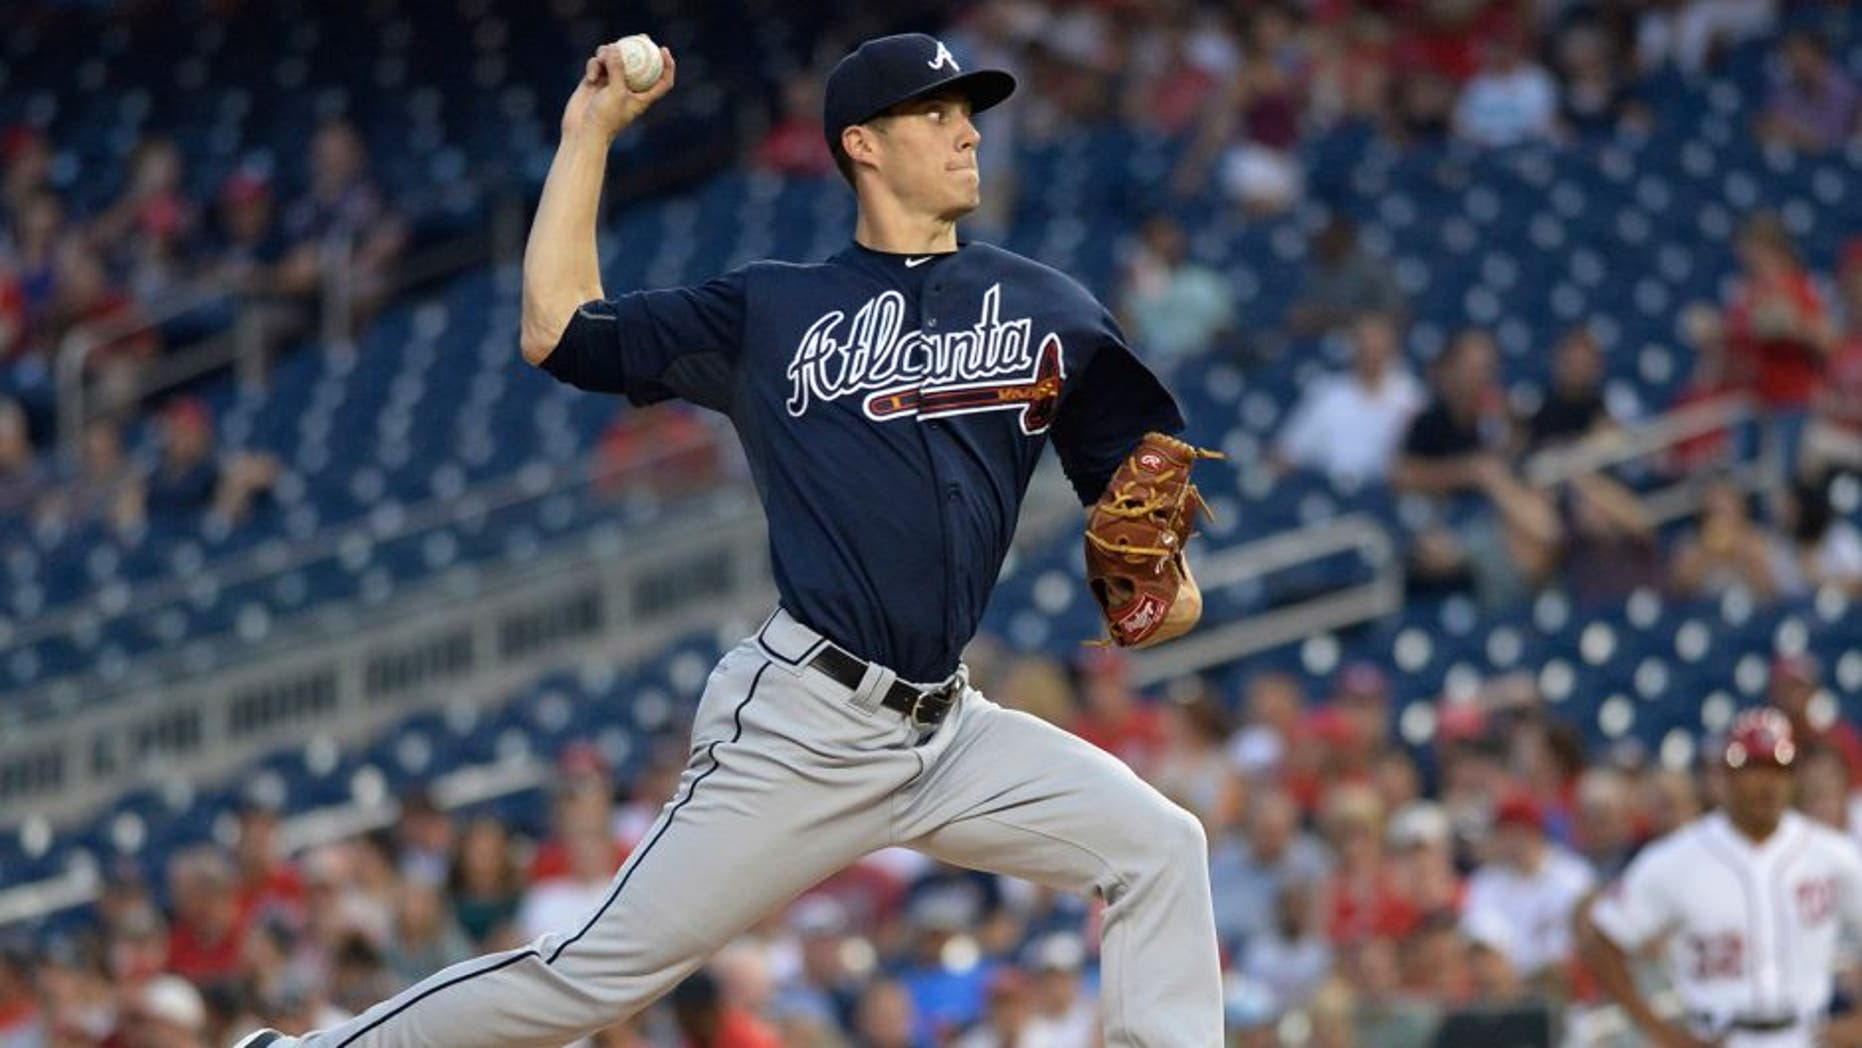 Sep 3, 2015; Washington, DC, USA; Atlanta Braves starting pitcher Matt Wisler (37) pitches during the first inning against the Washington Nationals at Nationals Park. Mandatory Credit: Tommy Gilligan-USA TODAY Sports